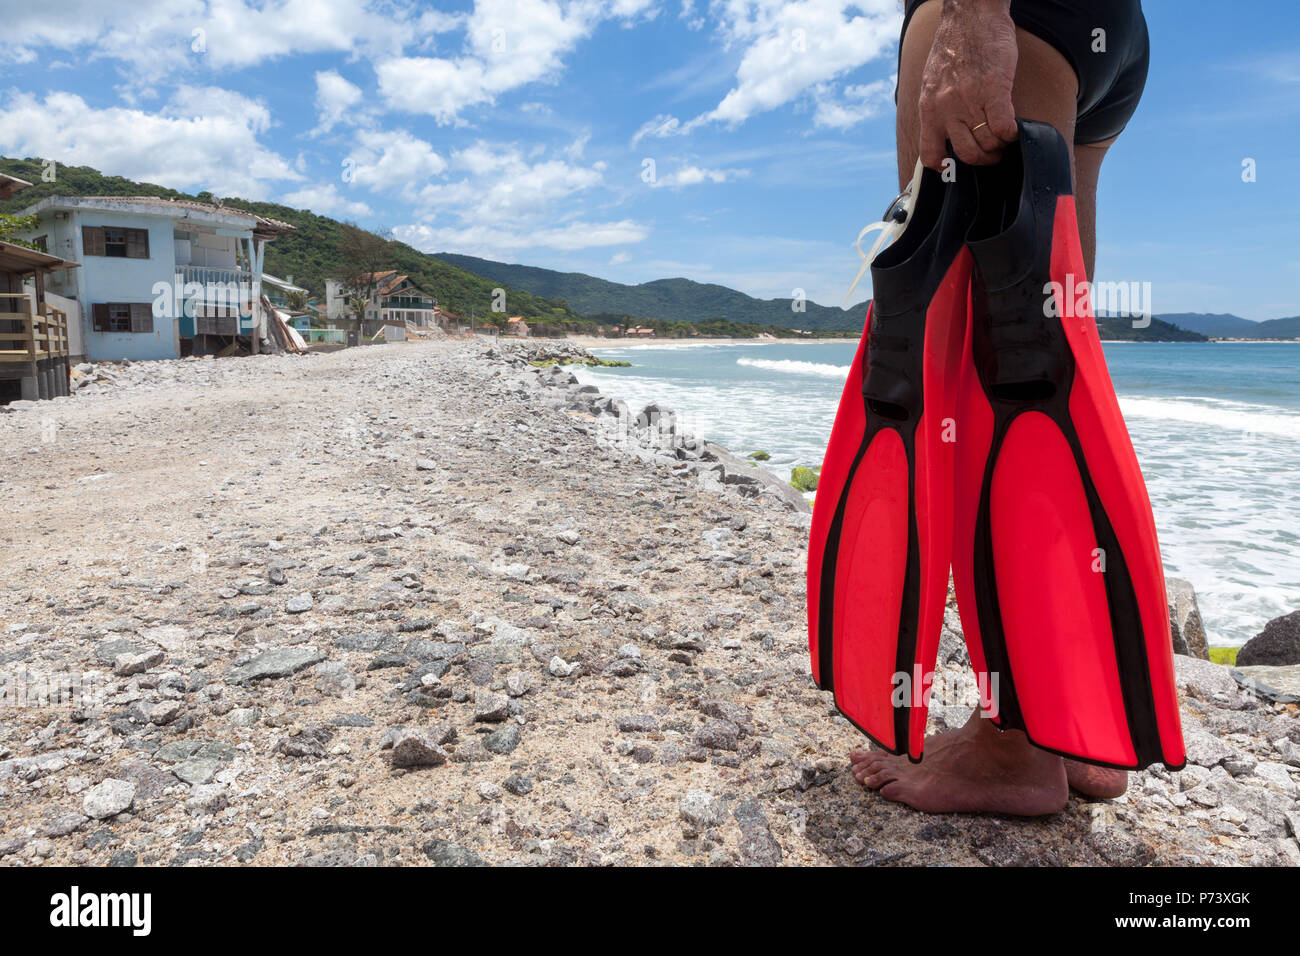 Florianopolis, Santa Catarina, Brazil. Man holding diving fins on street destroyed by the sea next to beach. Effect of rising sea levels. - Stock Image